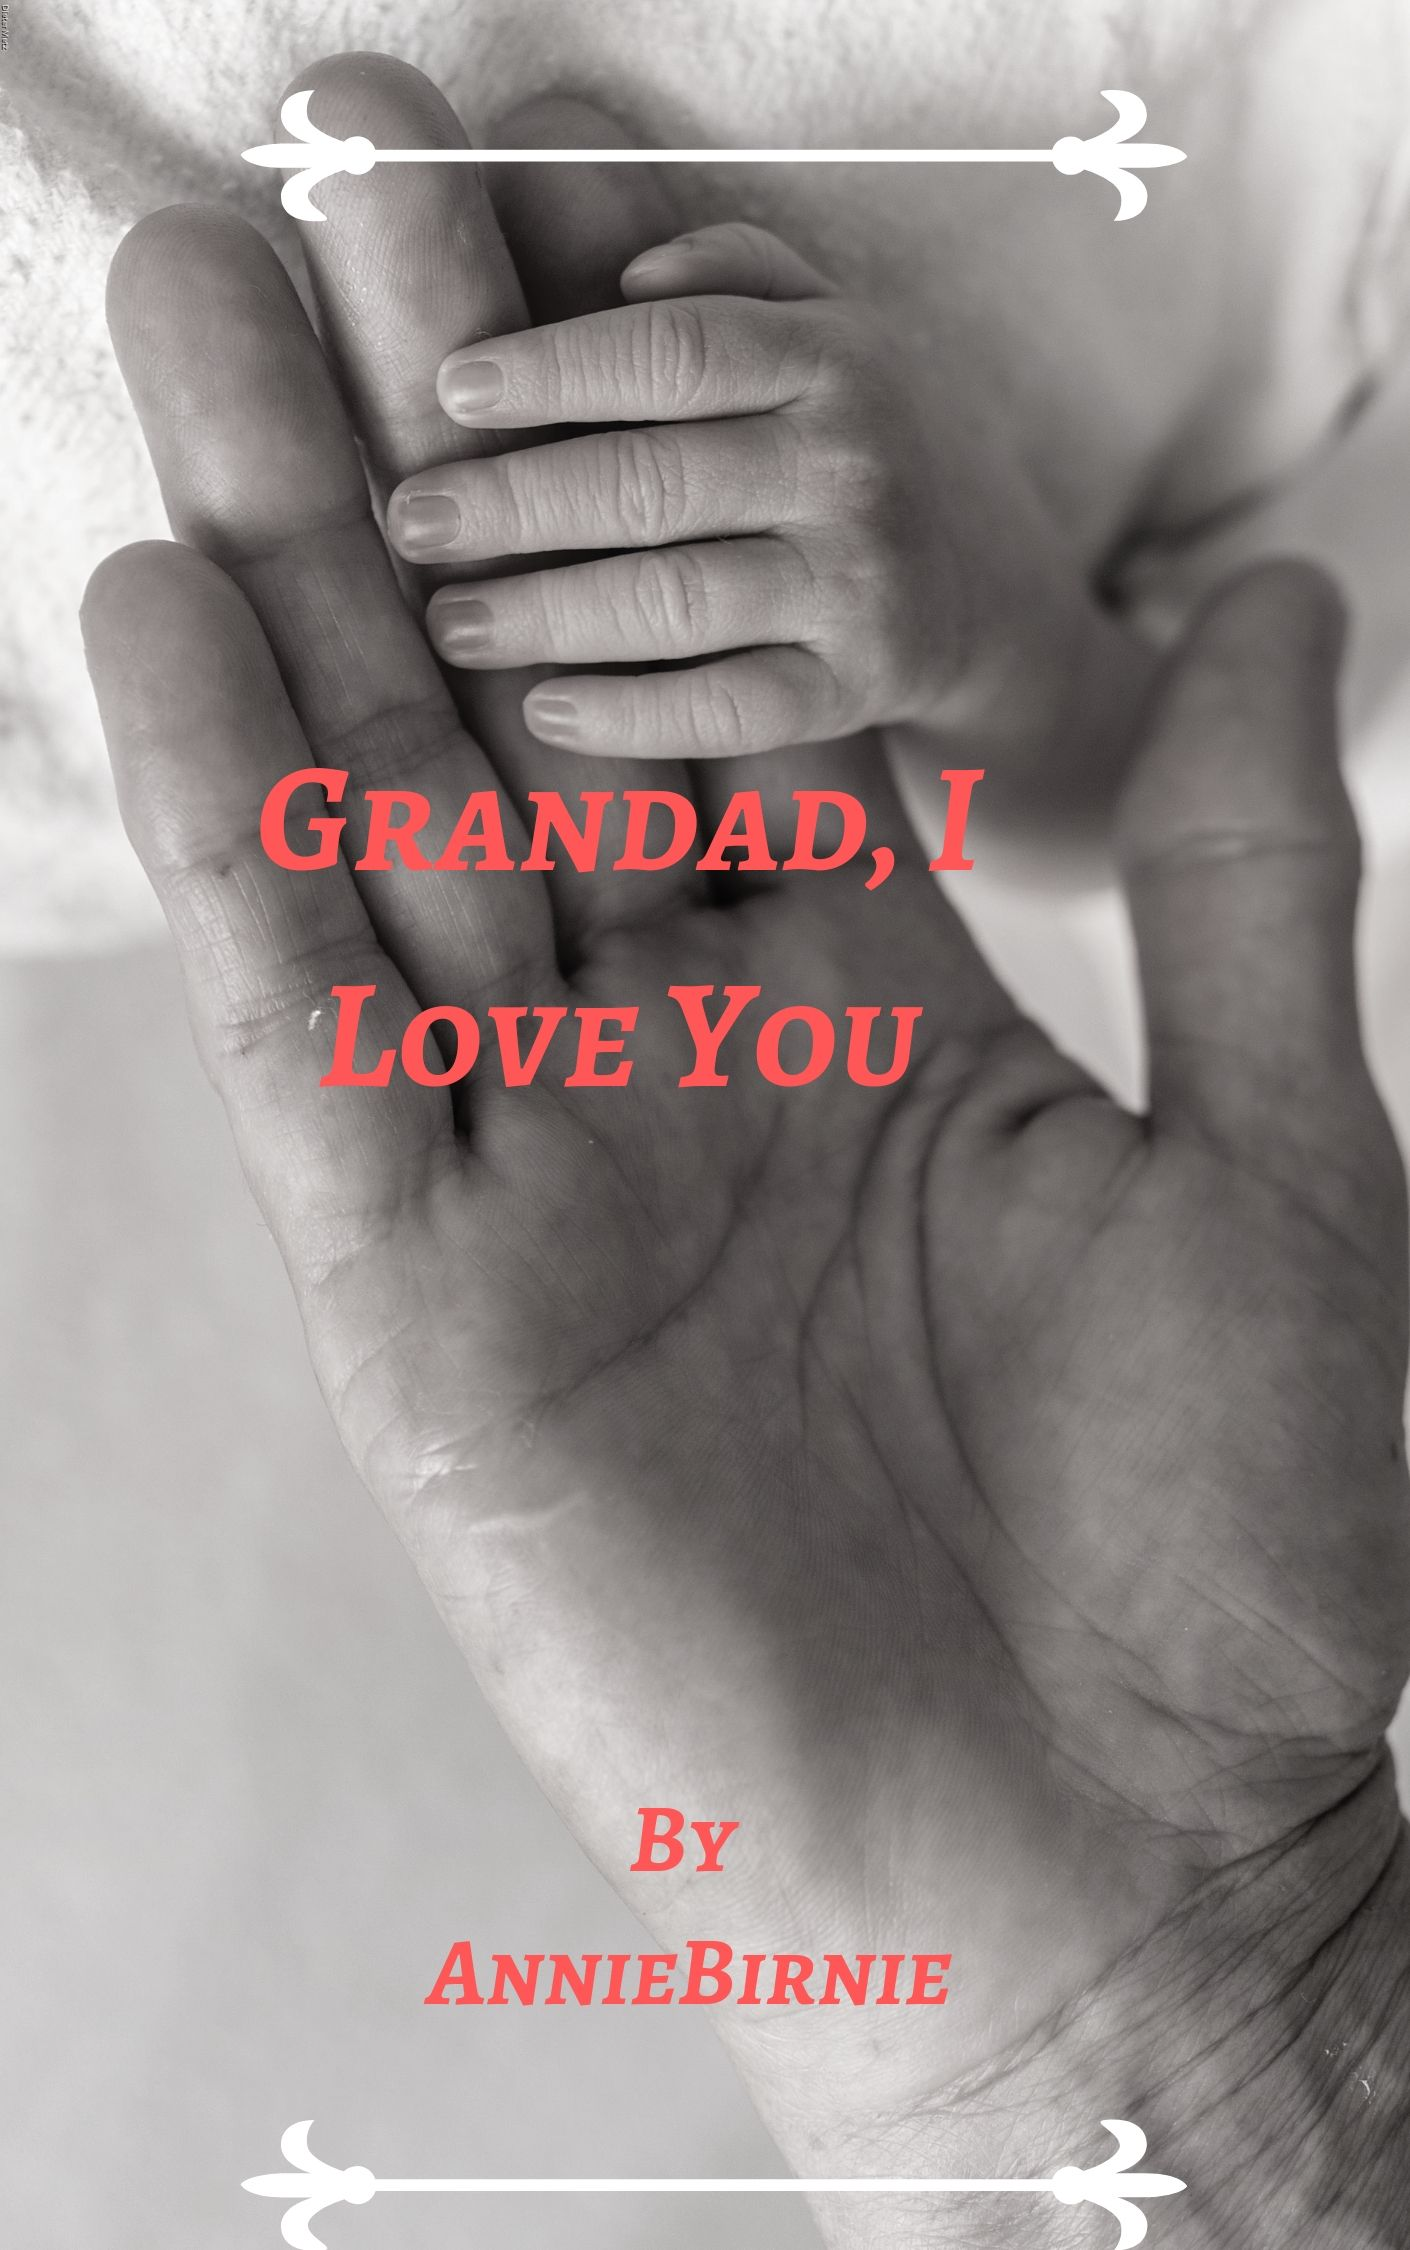 Grandad, I Love You!